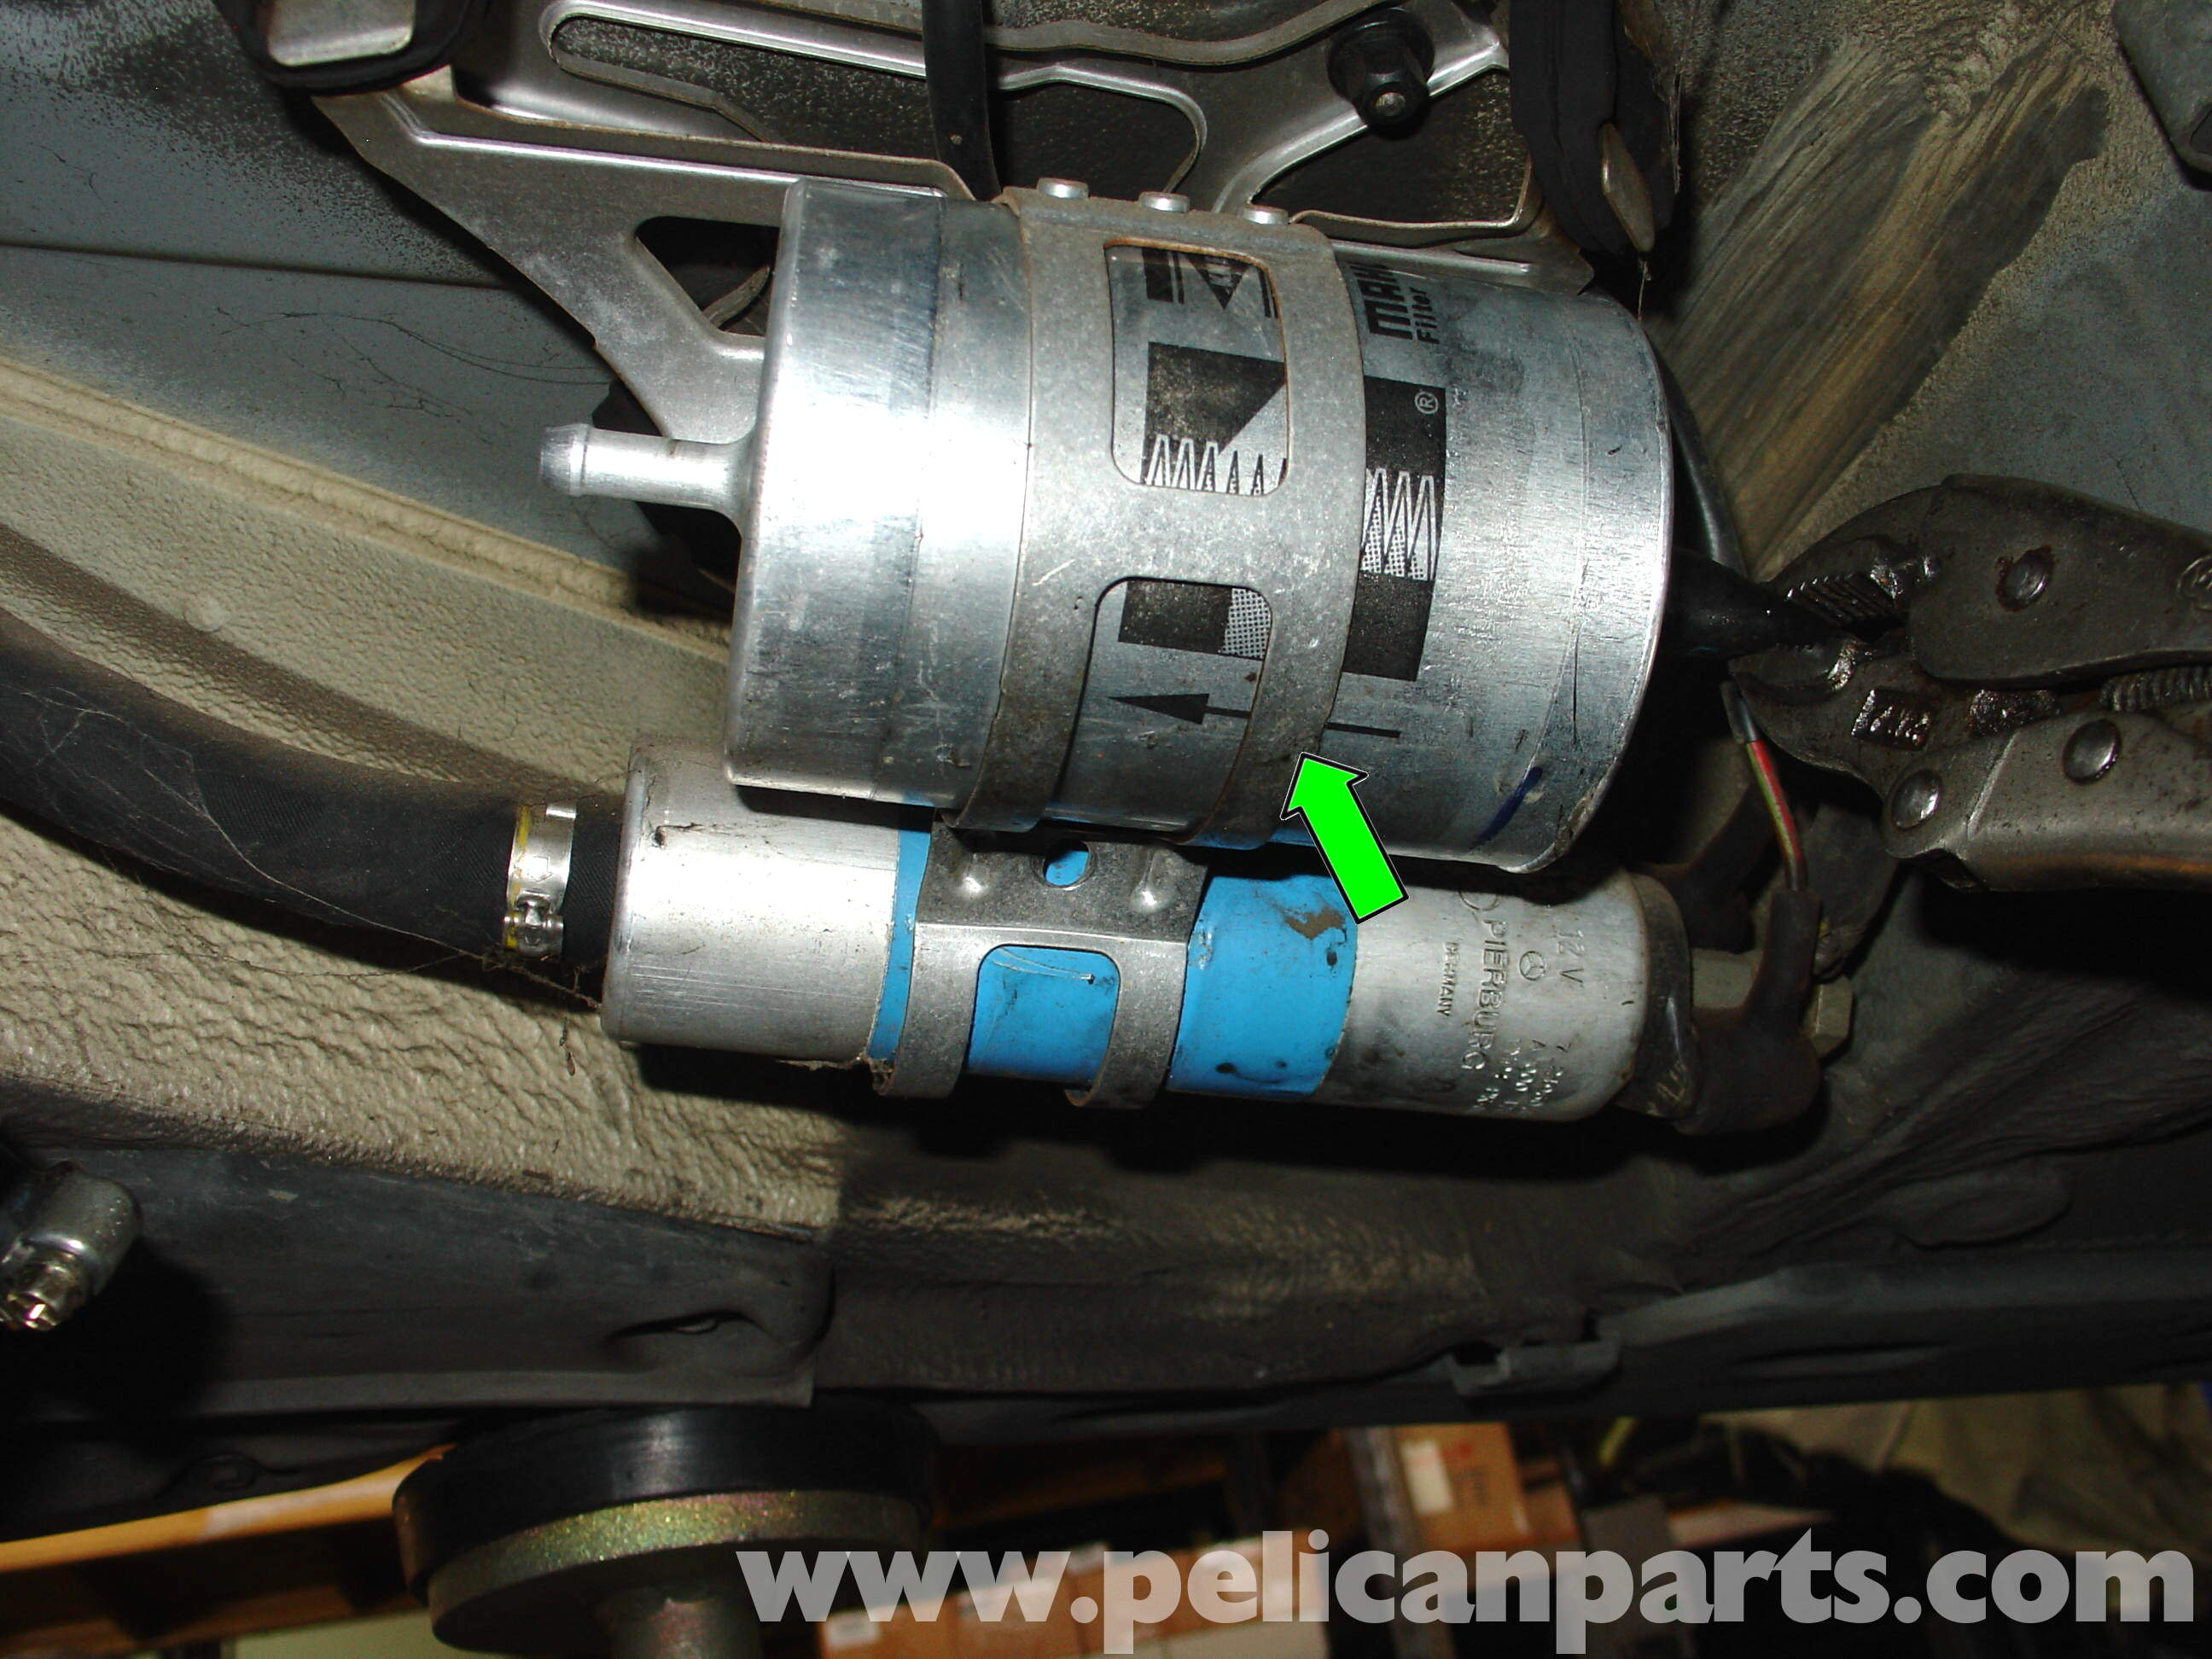 Fuse Box Mercedes Benz W210 Fuel Filter Replacement 1996 03 E320